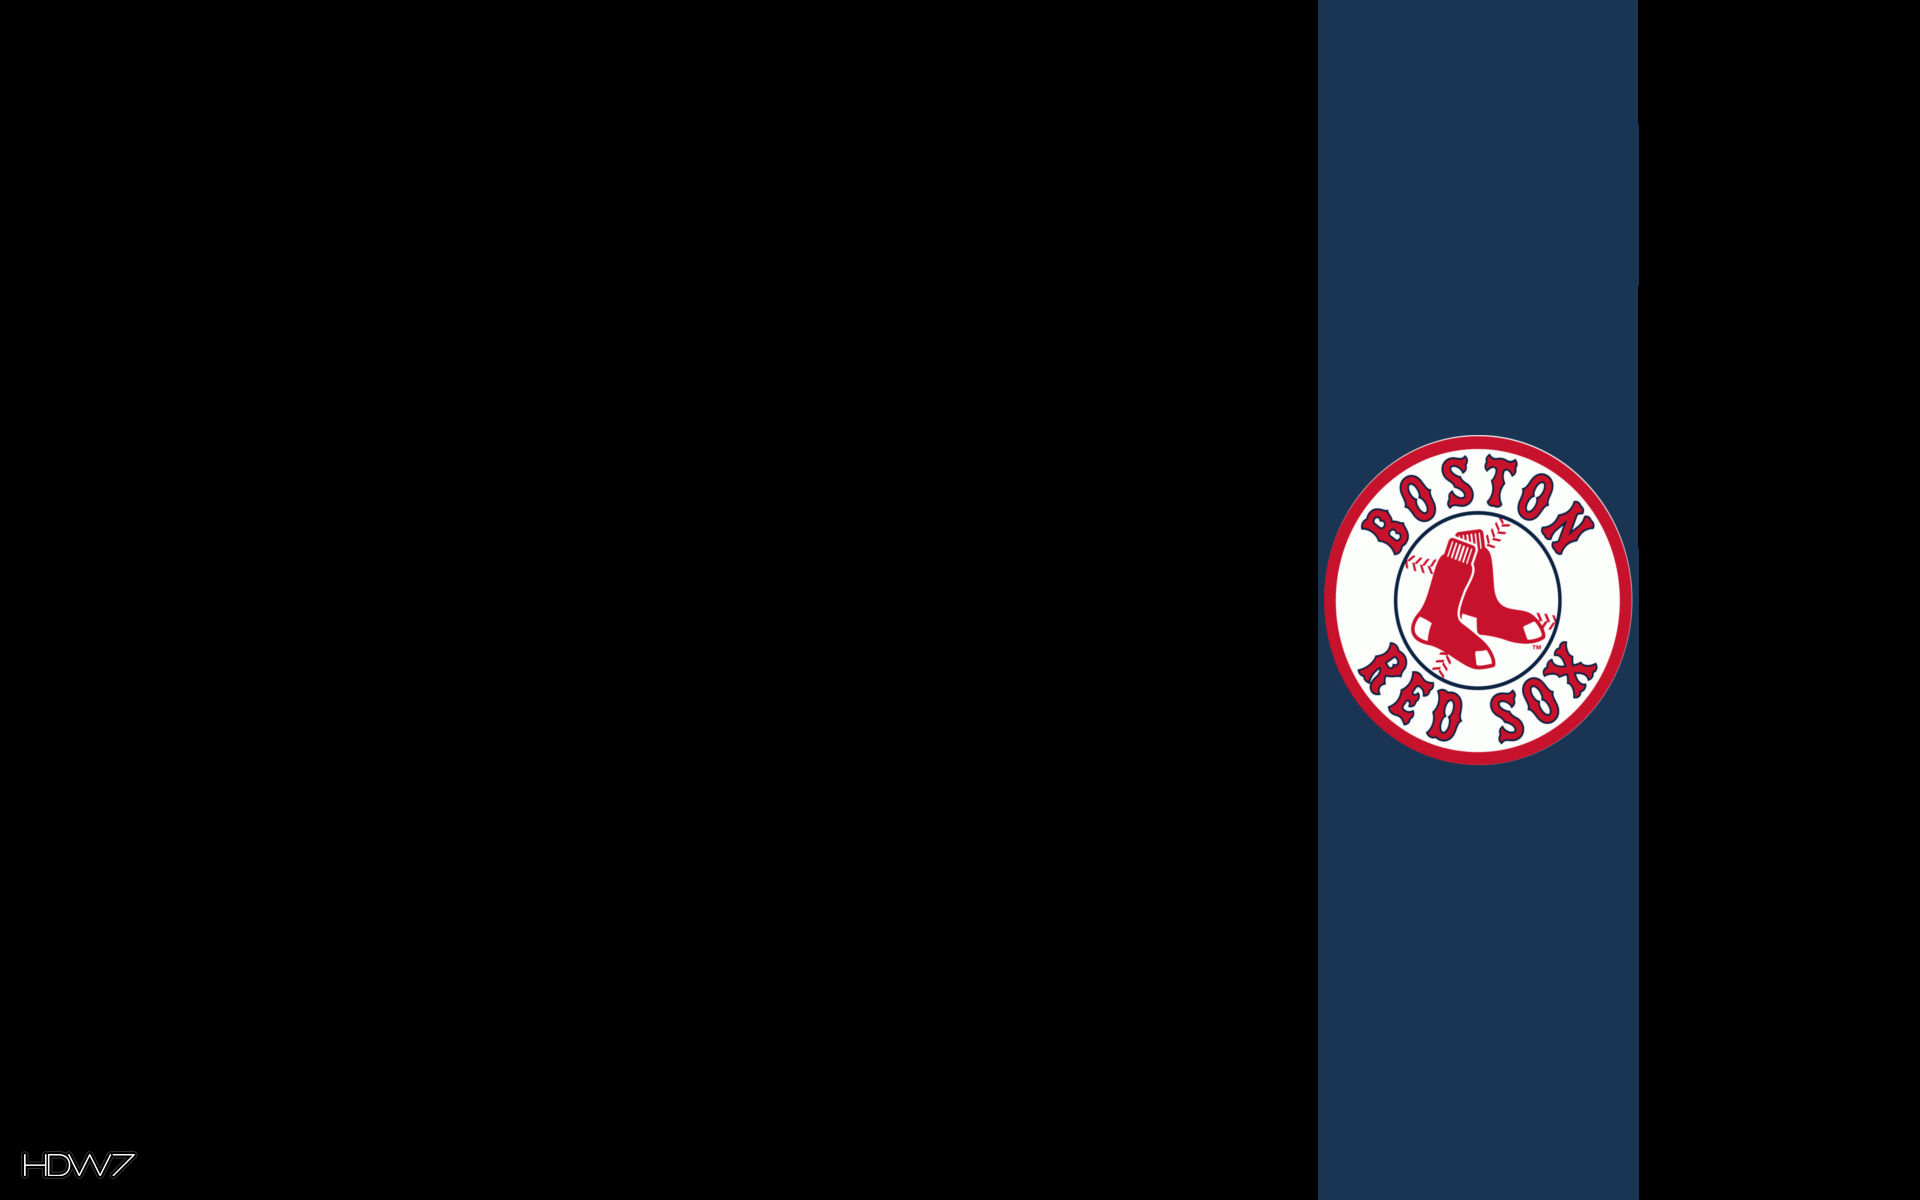 Red Sox Wallpaper 1920x1200